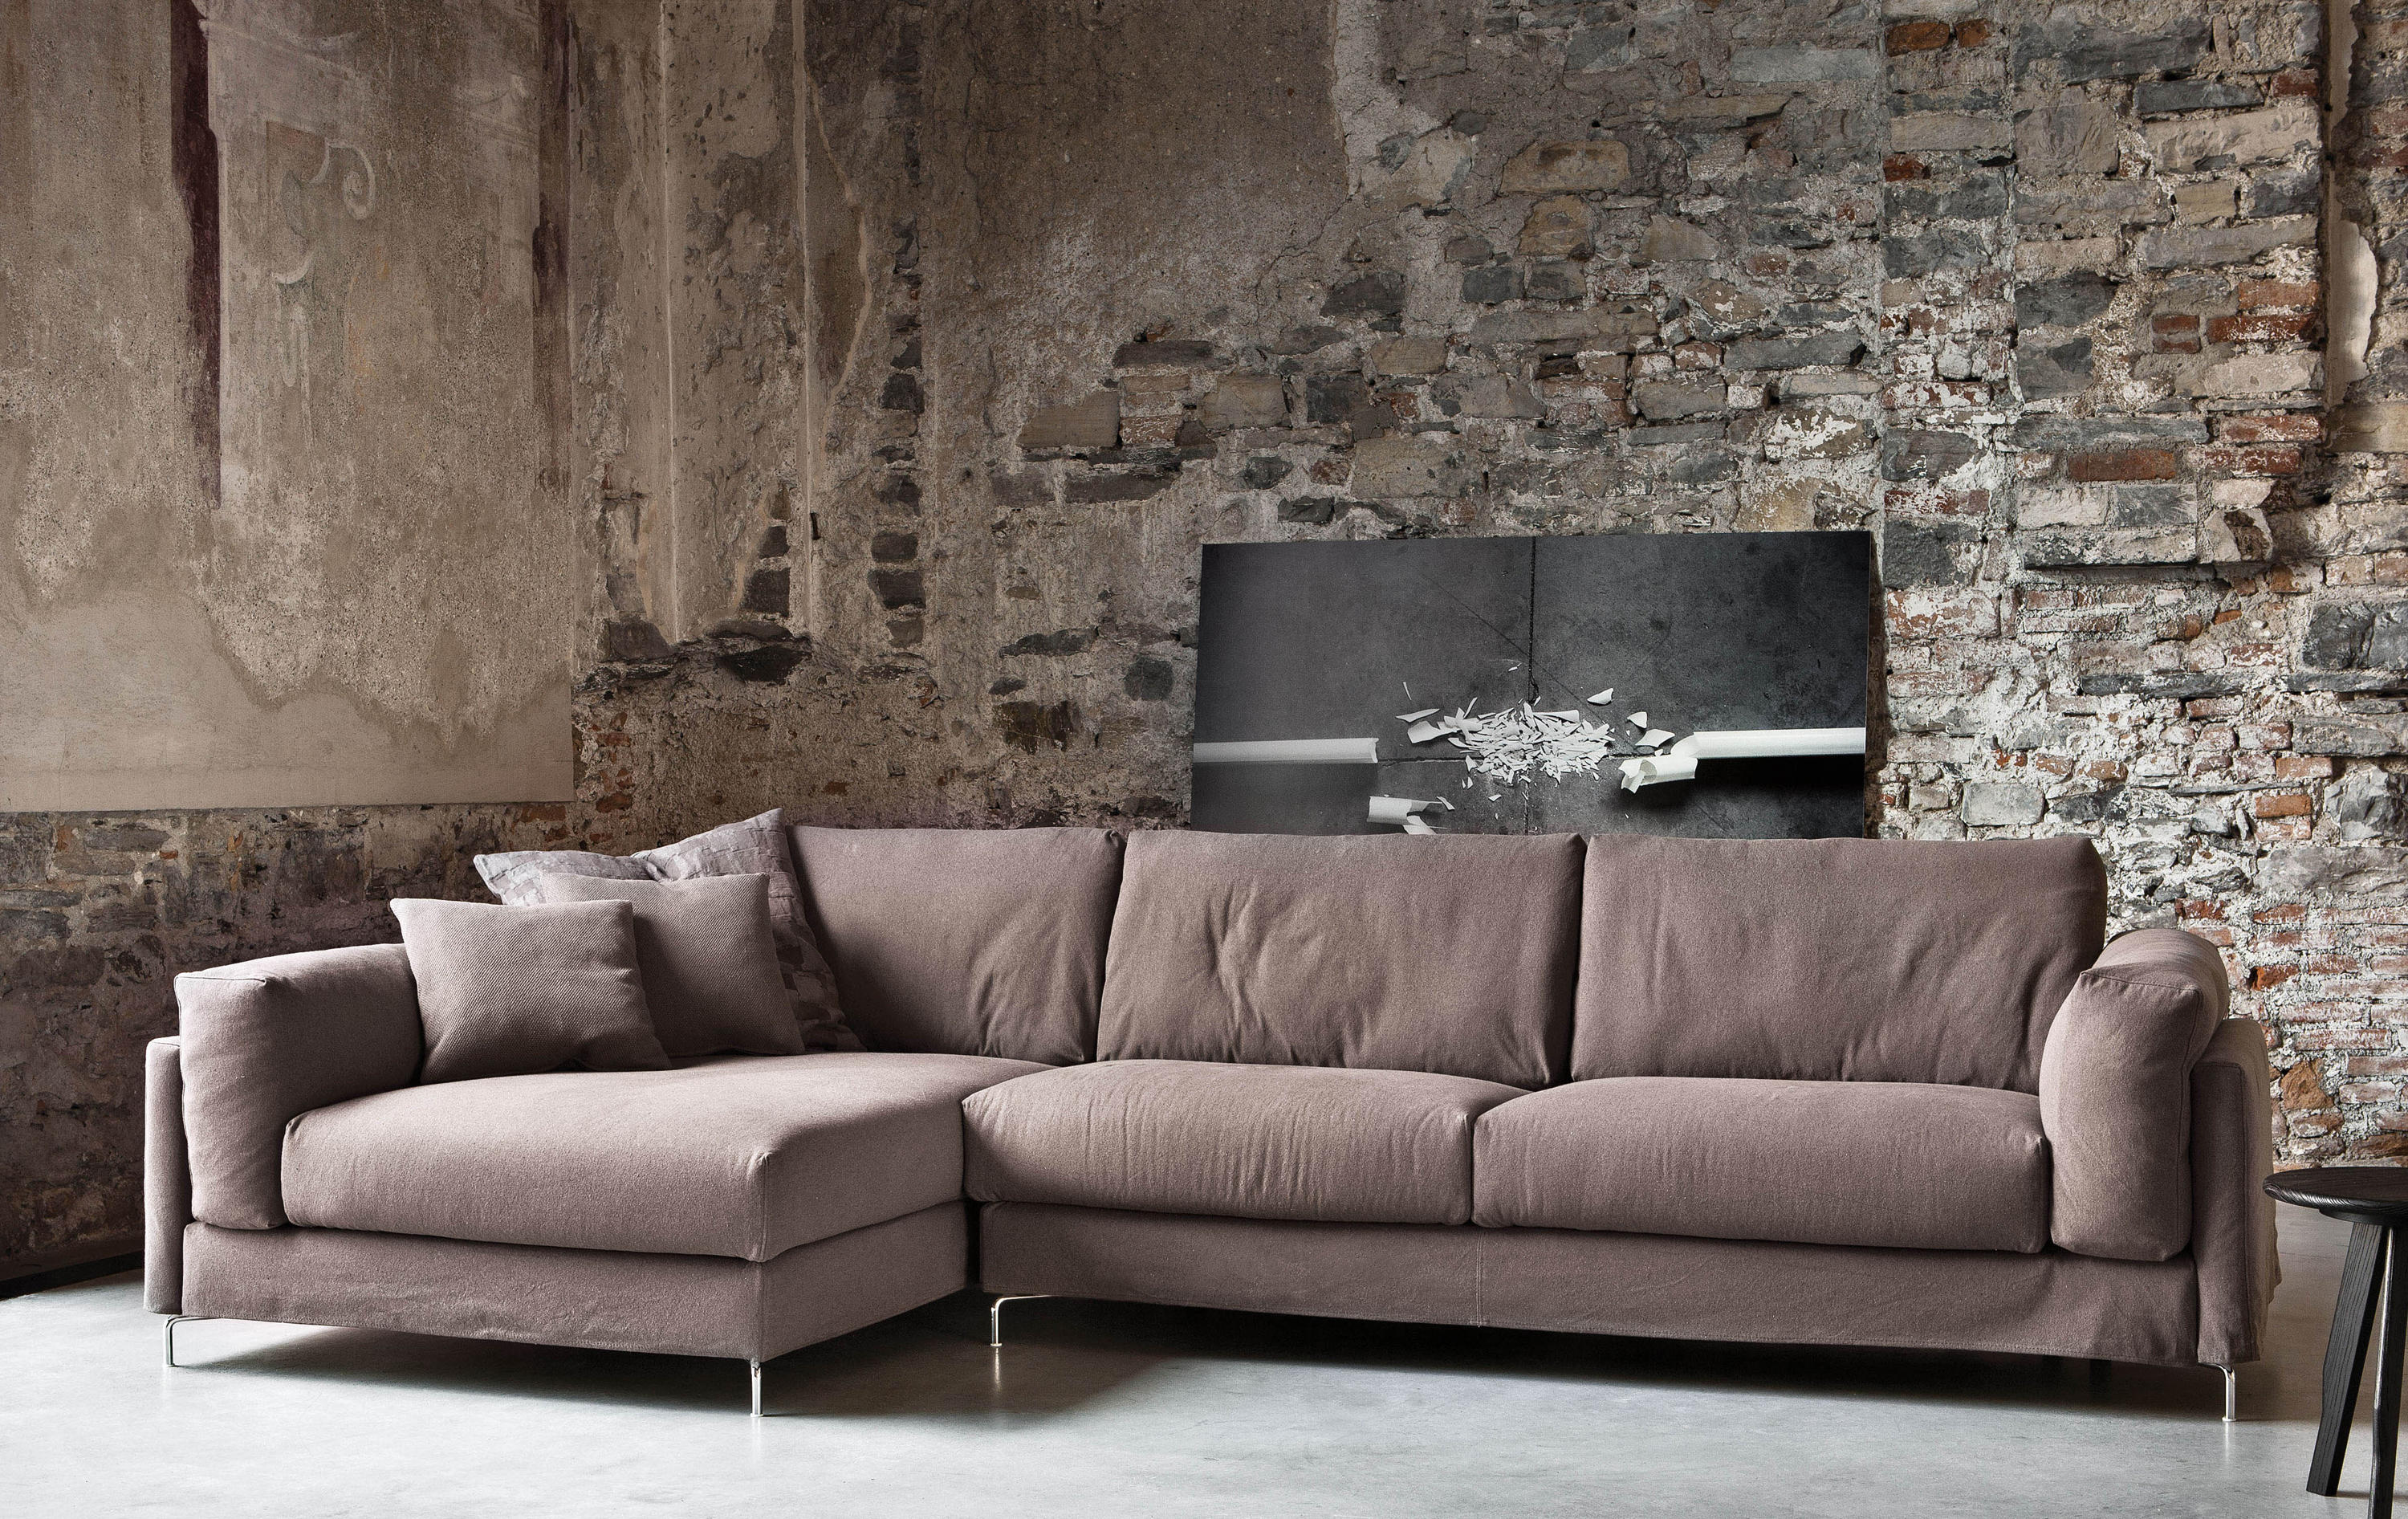 Free 375 Sofa By Vibieffe ...